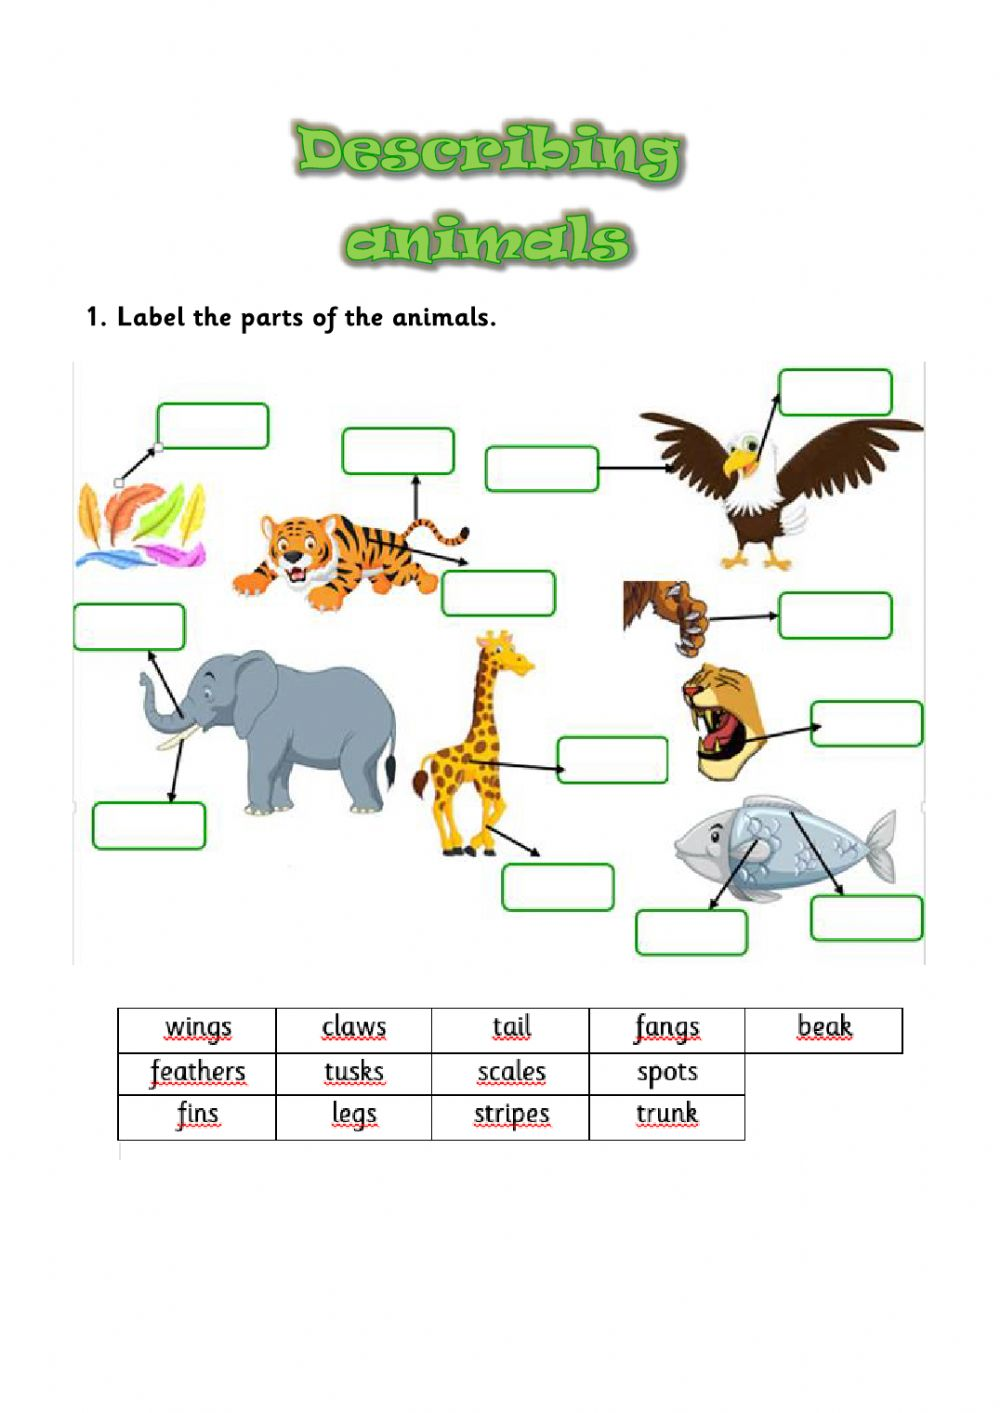 hight resolution of Describing animals interactive activity for GRADES 2 AND 3